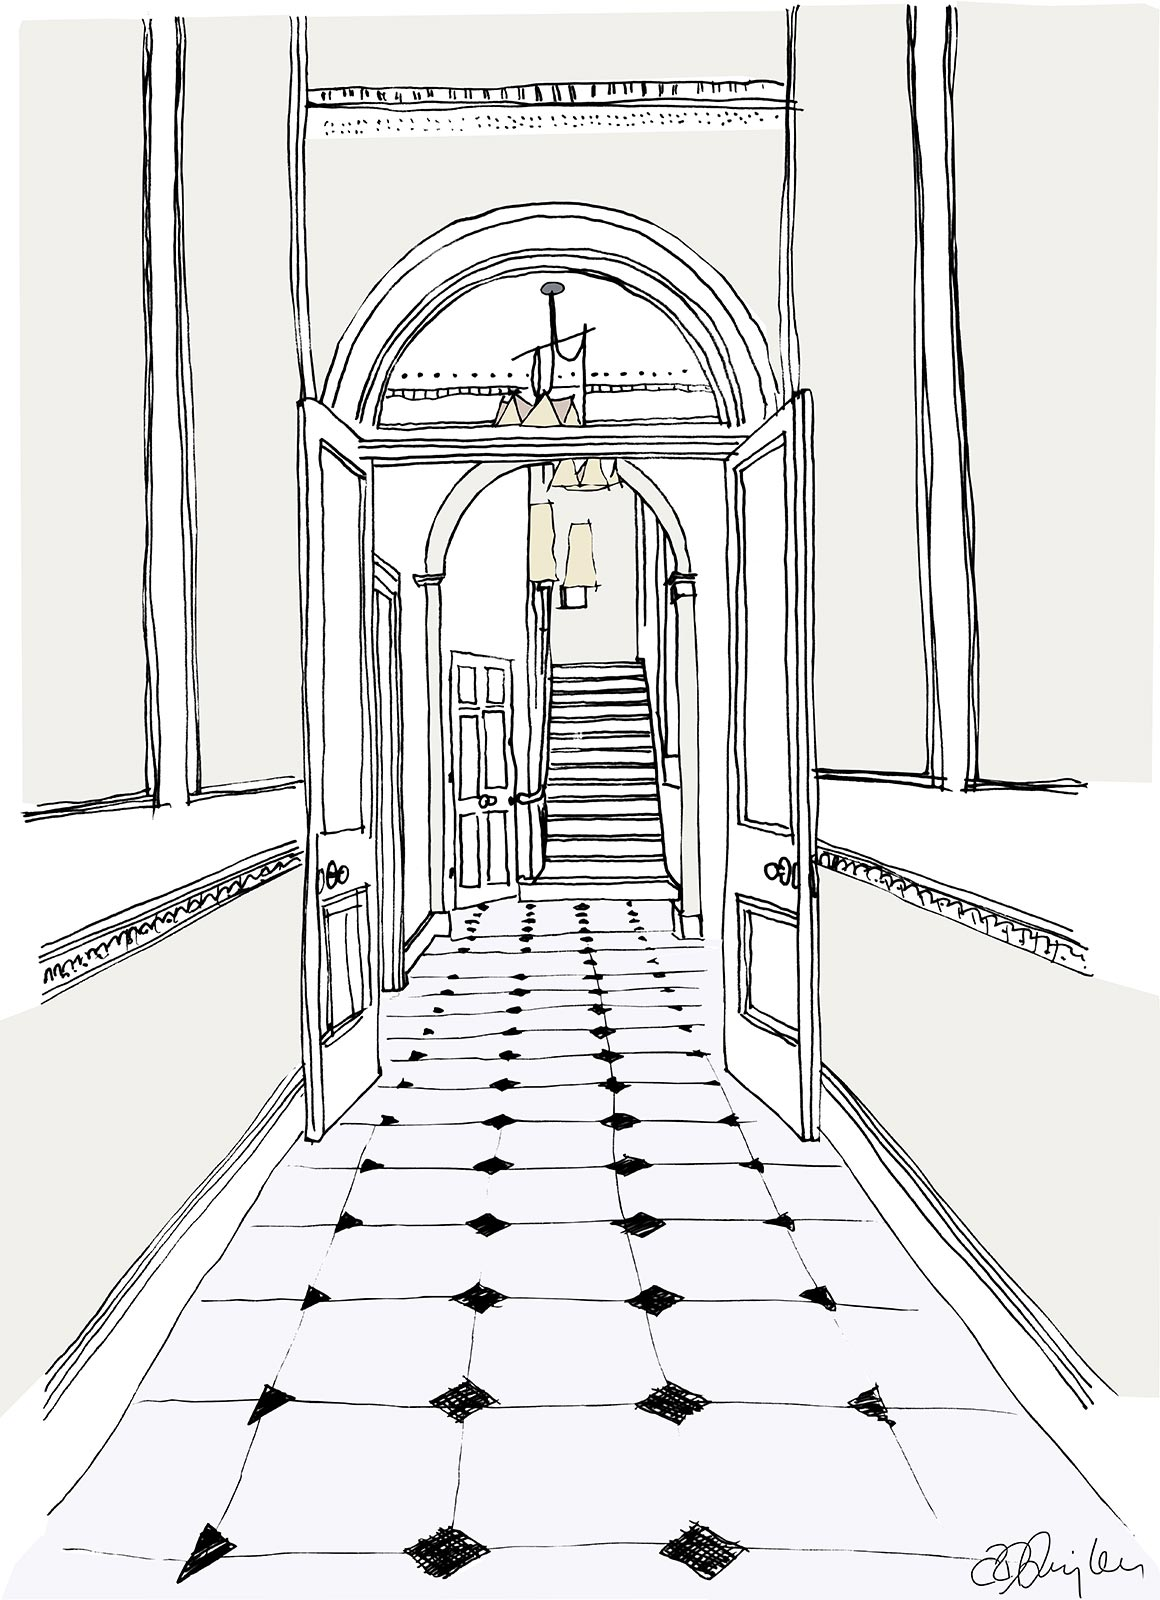 M&E Design for Renovation of Listed Building